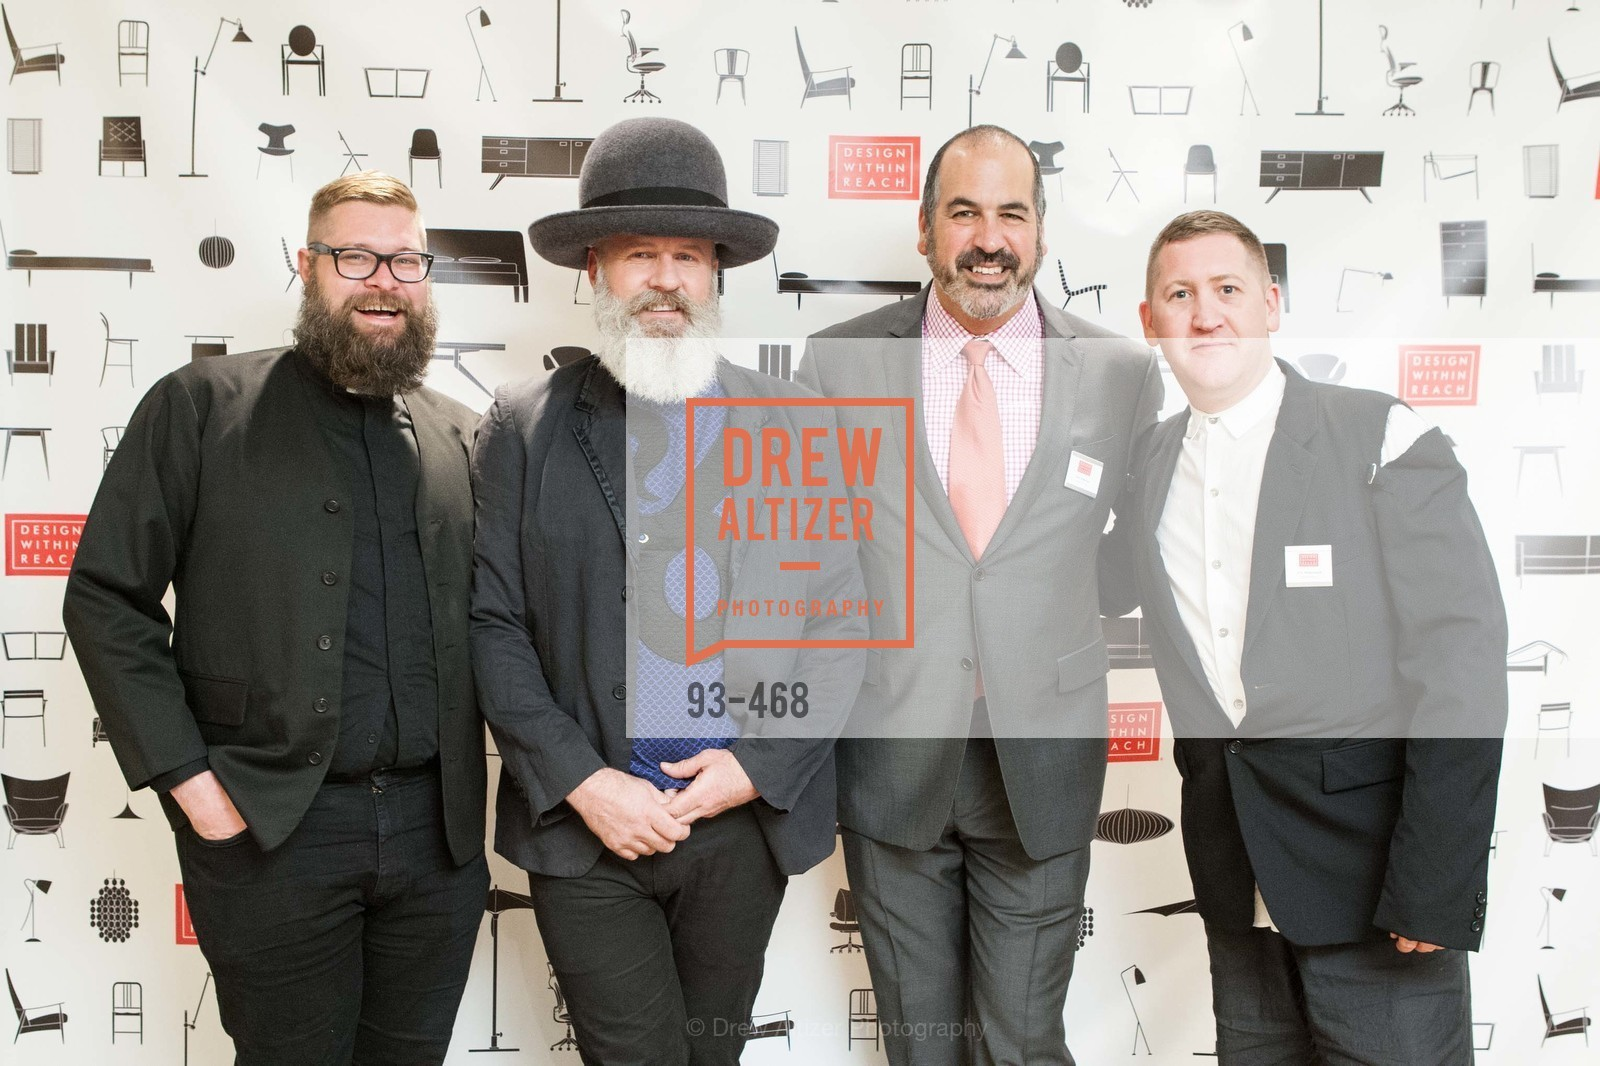 Rick Ray, Damian Carver, John Edelman, Eric Hildebrandt, DESIGN WITHIN REACH Studio Opening, US. US, January 21st, 2014,Drew Altizer, Drew Altizer Photography, full-service agency, private events, San Francisco photographer, photographer california